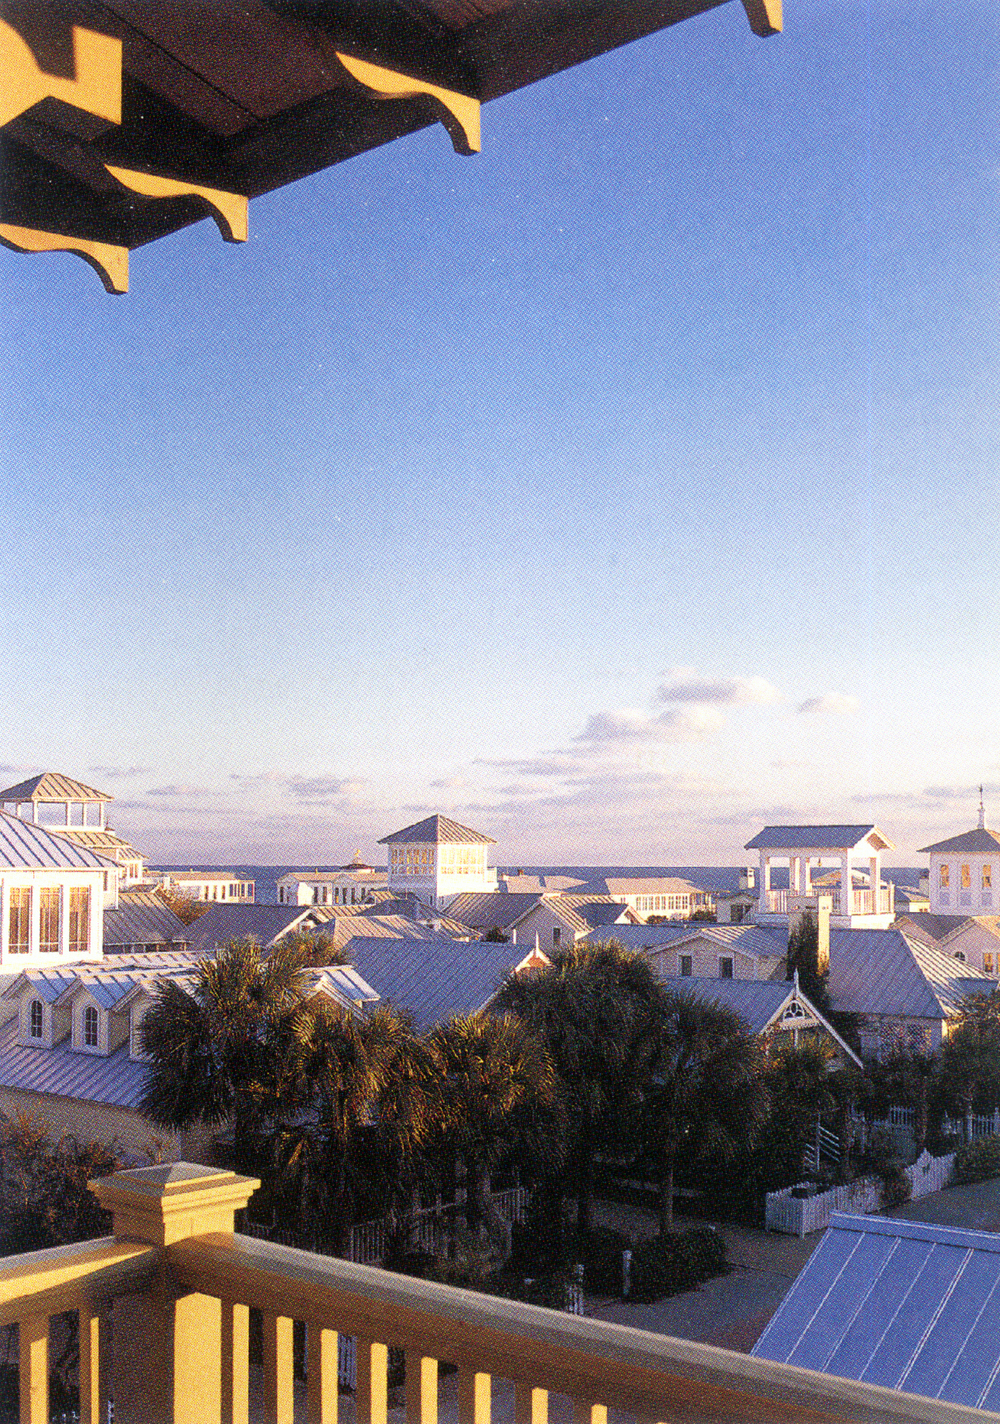 Seaside_Florida.Beach.Natchez_House.New_Urbanism.CNU.Courtyard.Walkable.Robert_Orr_&_Associates.Architecture.Landscape_Architecture.Urbanism.High_Rustler_Porch.jpg